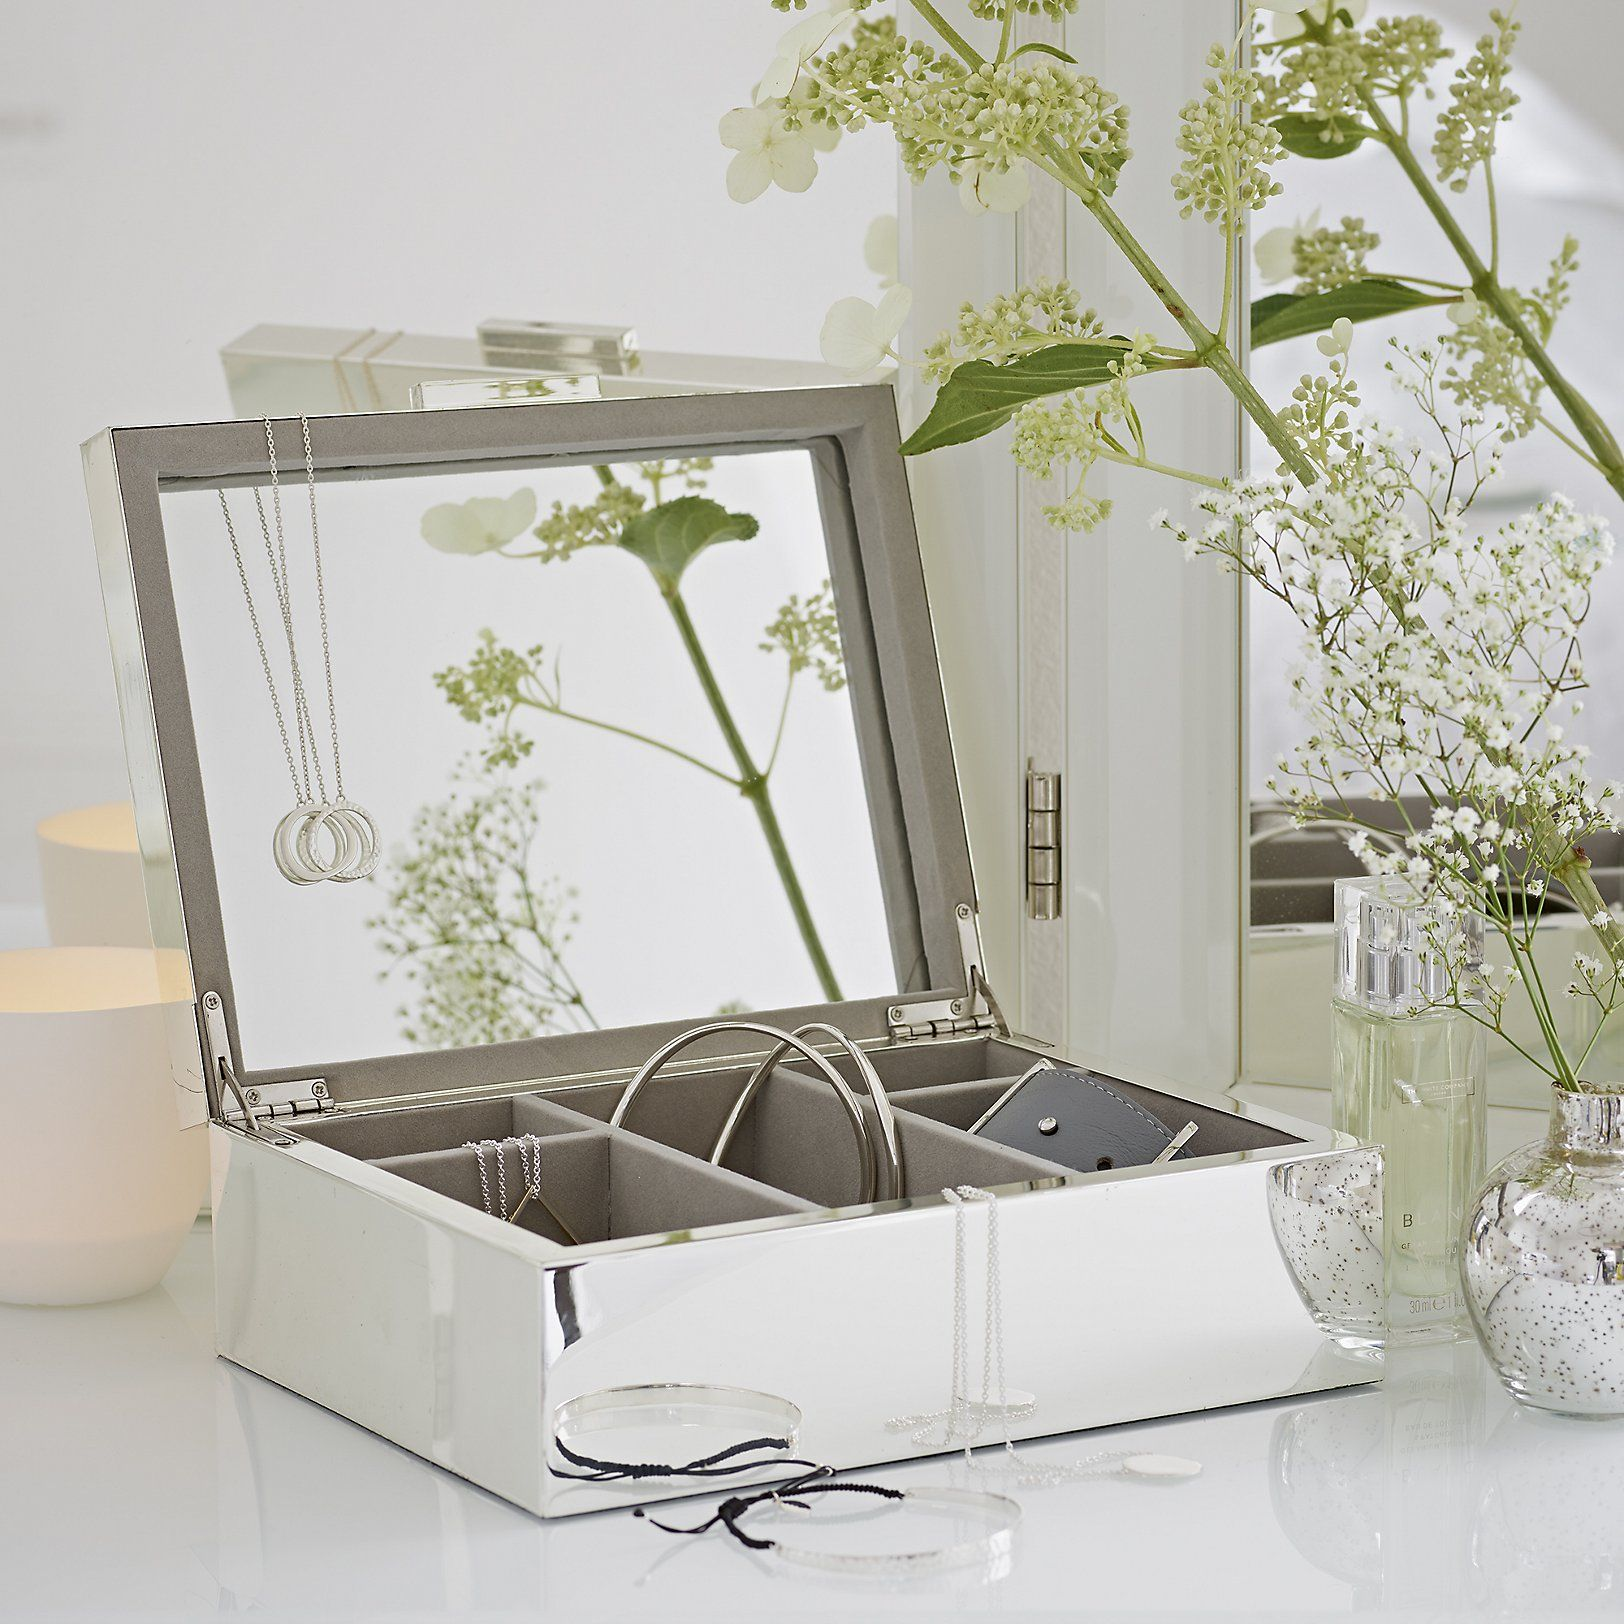 The White Company US Silver Plated Jewelry Box Inspired by 1920s